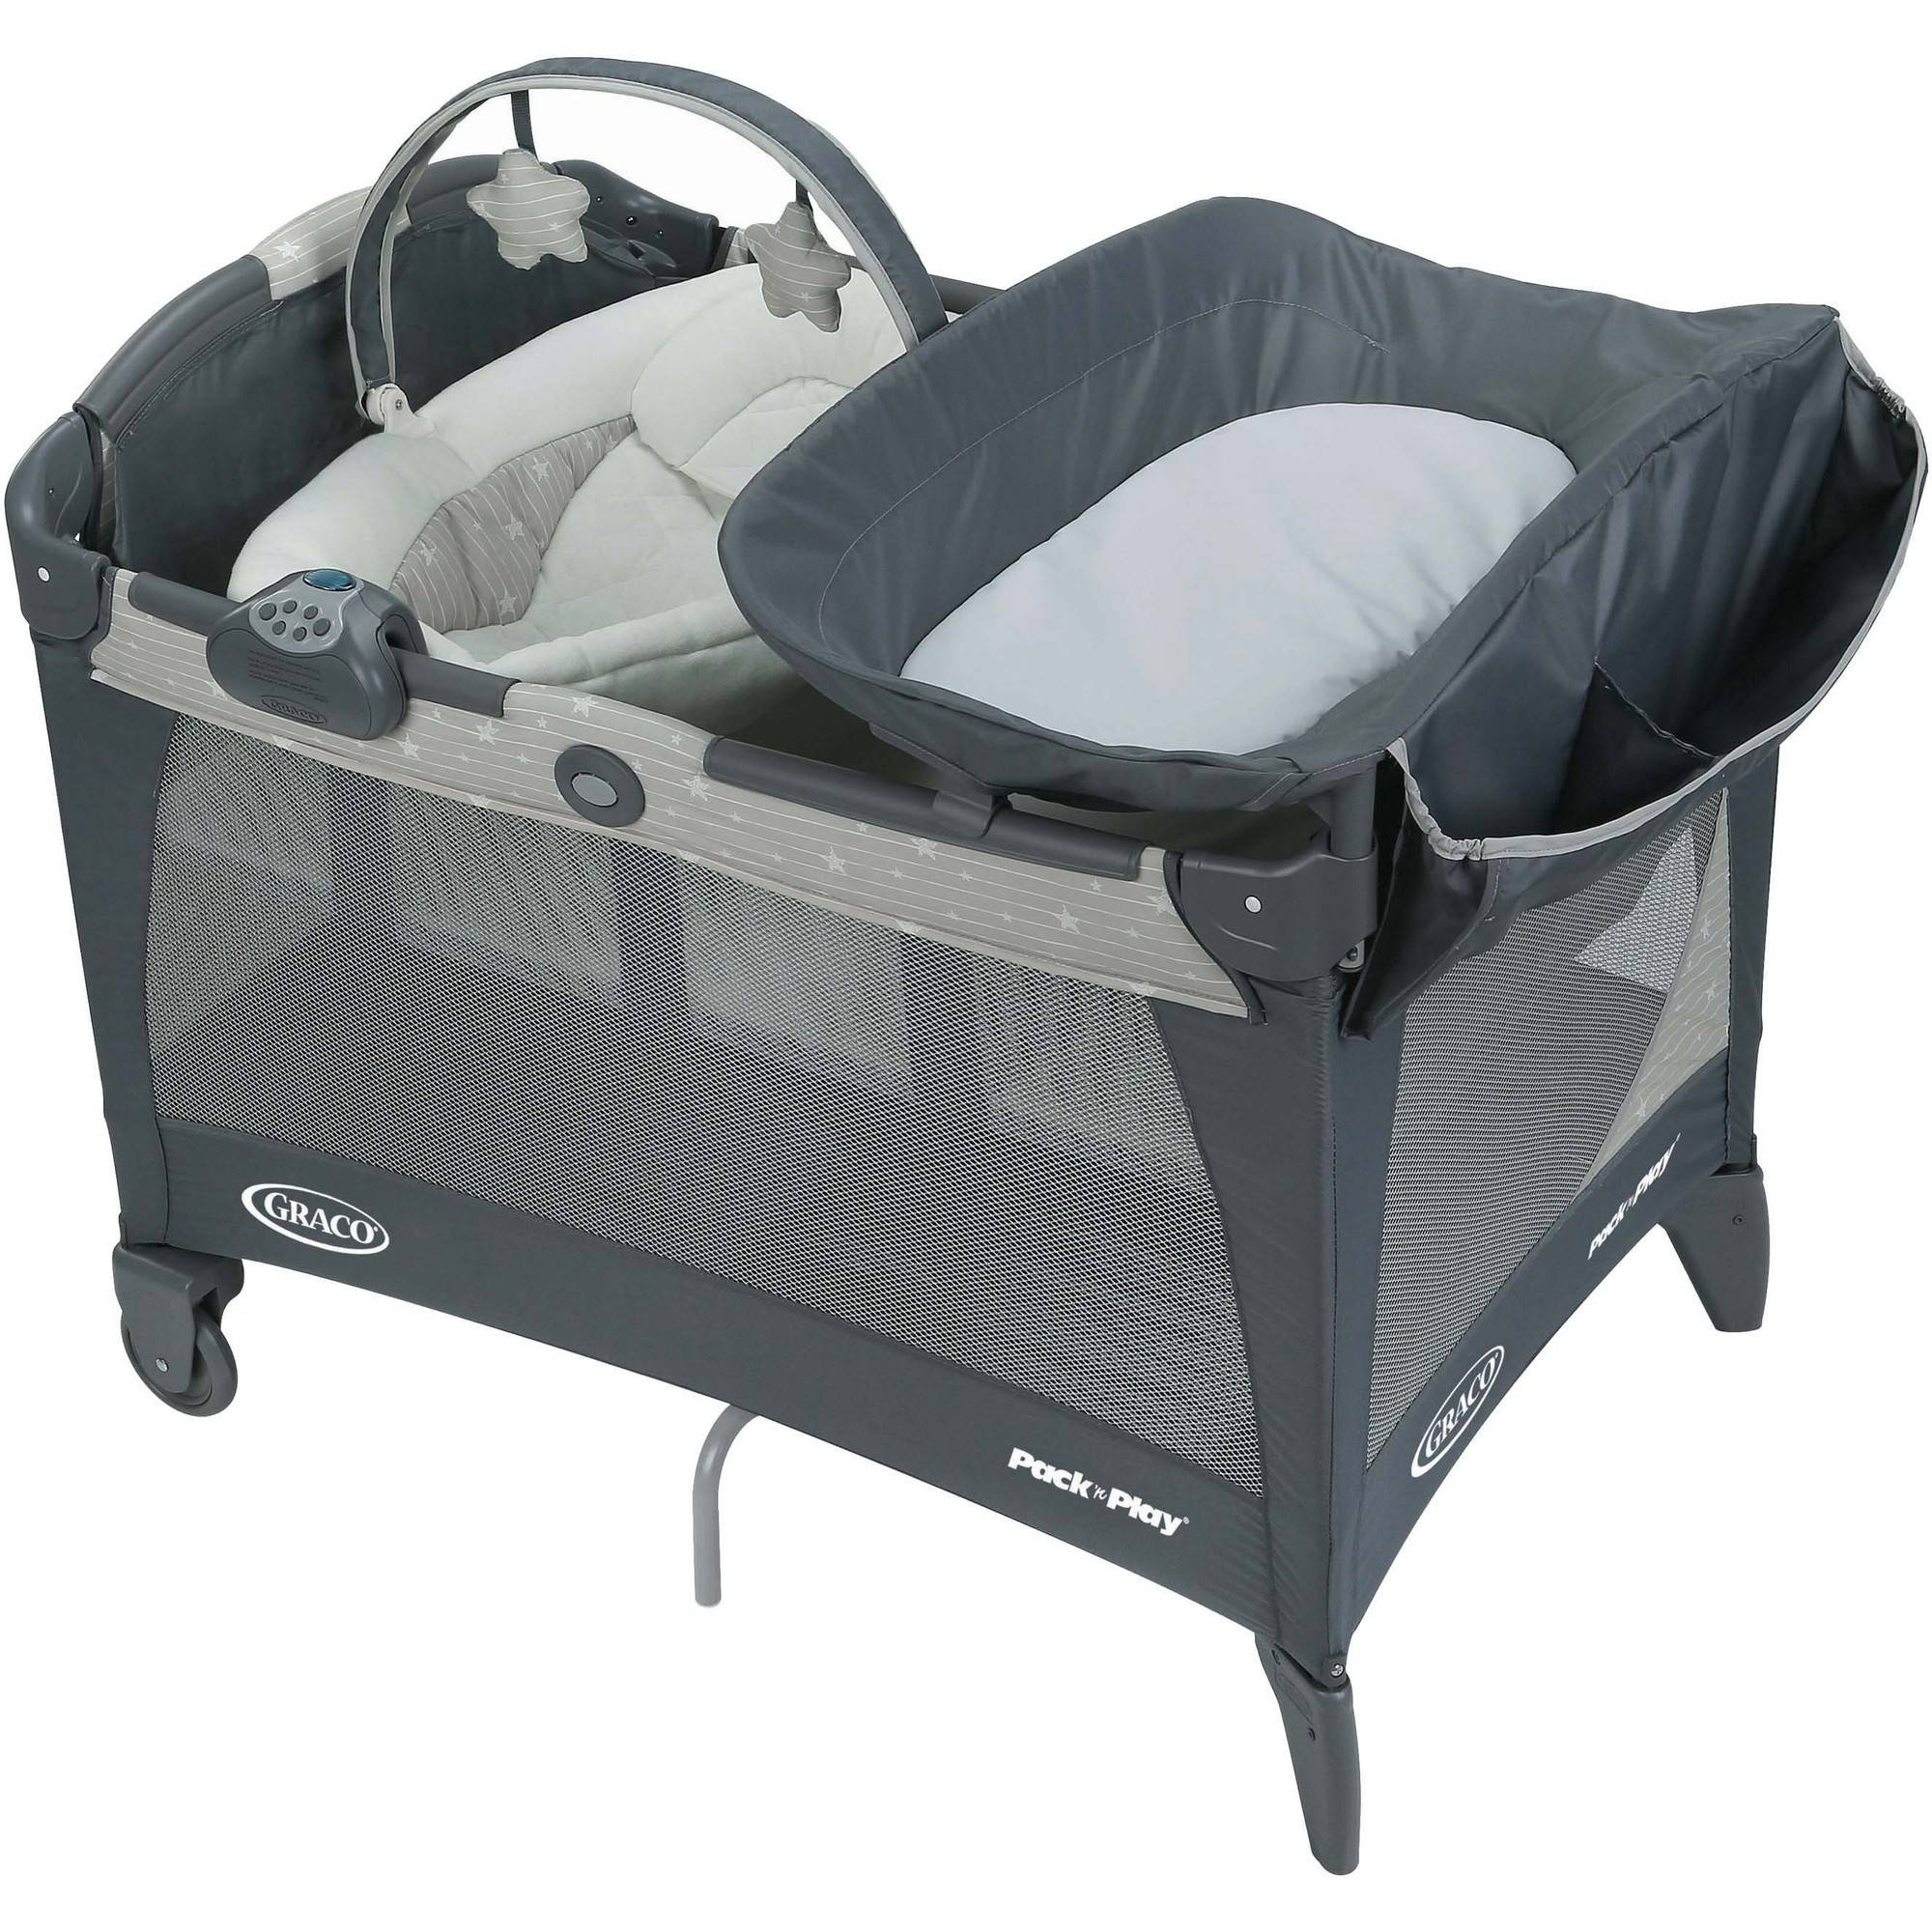 Graco Pack 'n Play with Newborn Napper LX Baby Play Pen, Stars by Graco